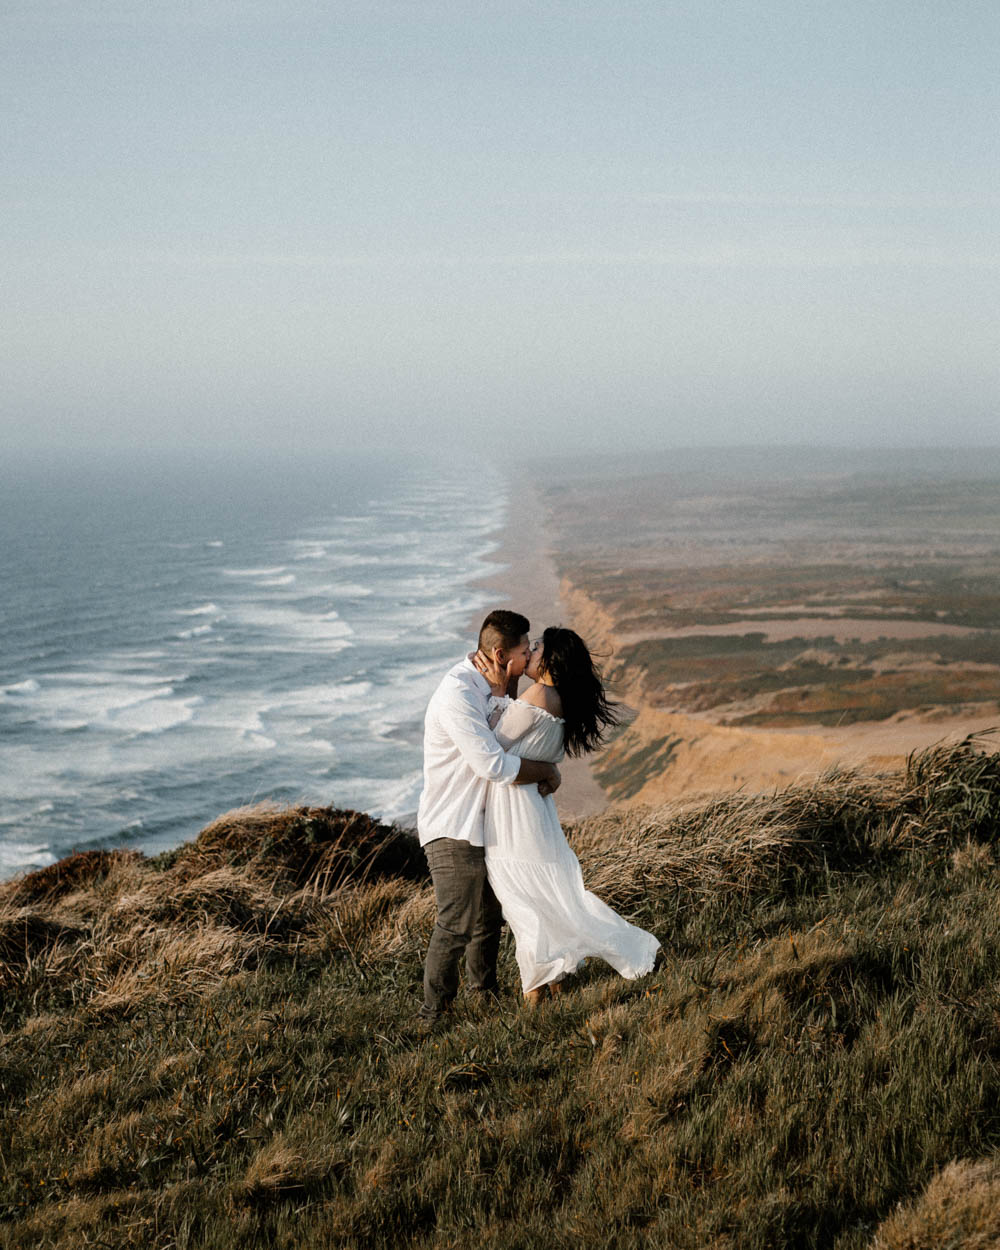 California top 33 epic engagement photography locations point reyes at sunset